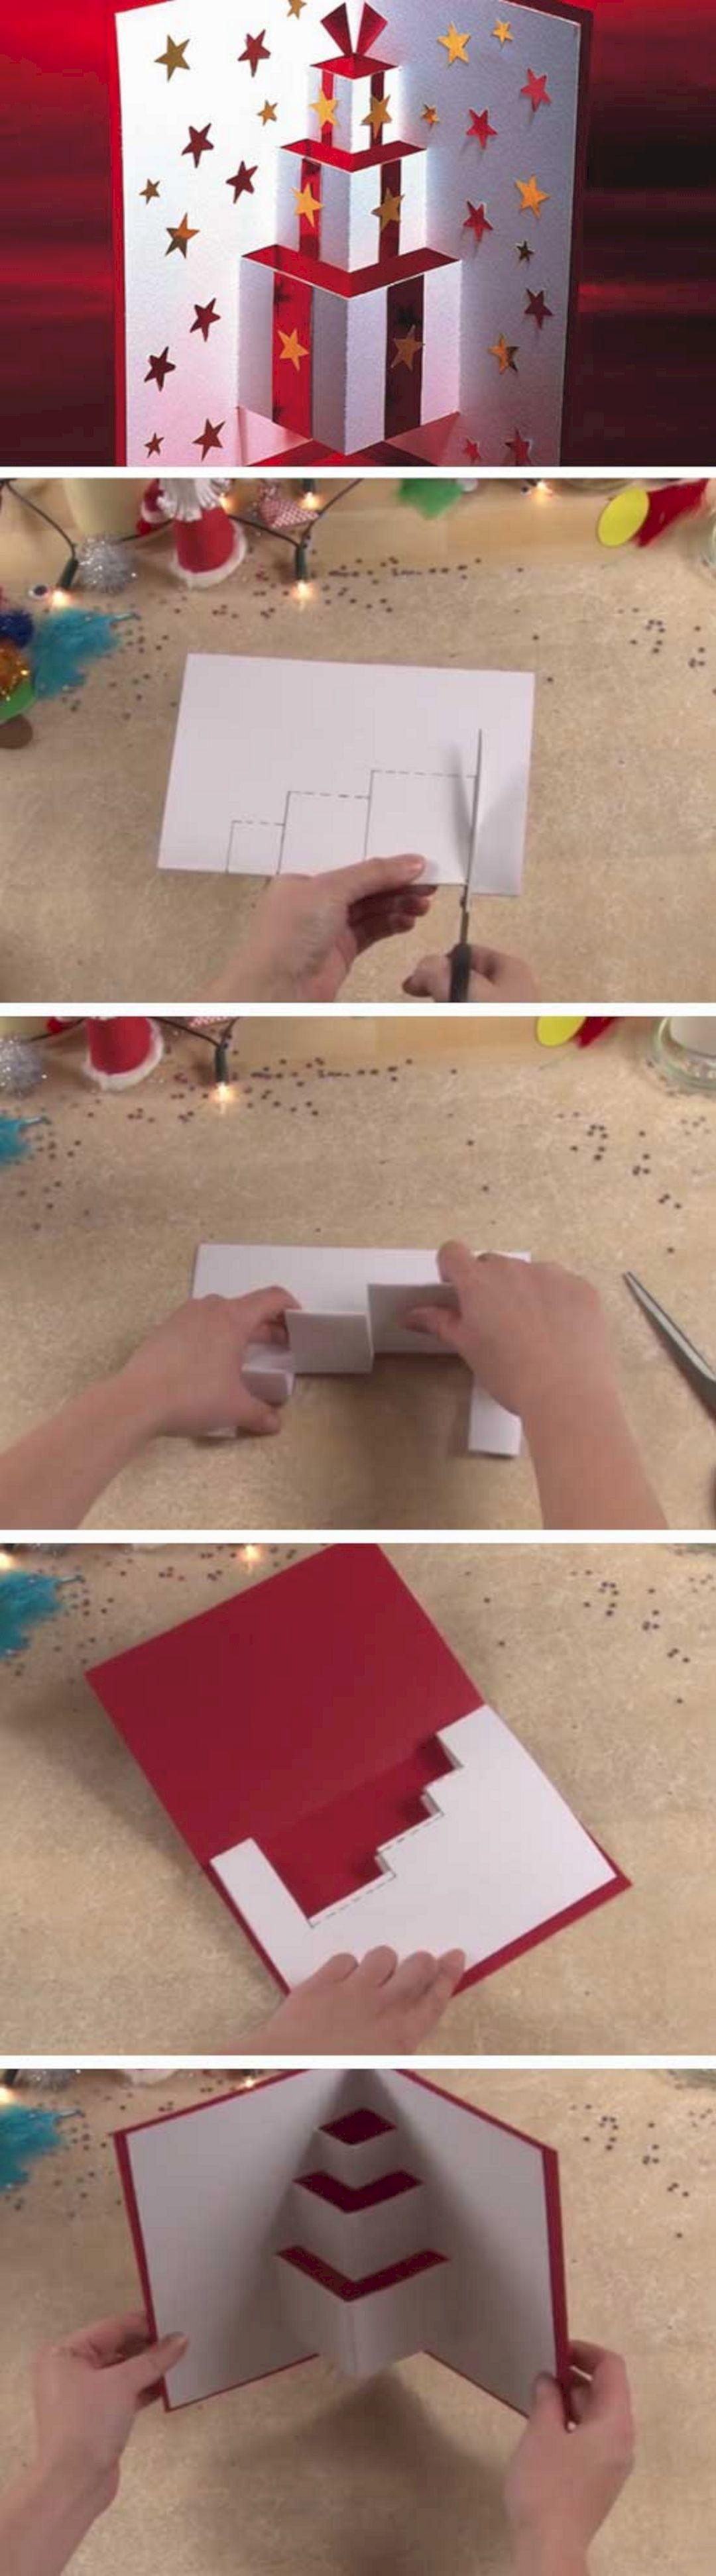 Easy Diy Christmas Crafts Ideas Your Kids 190 Montenr